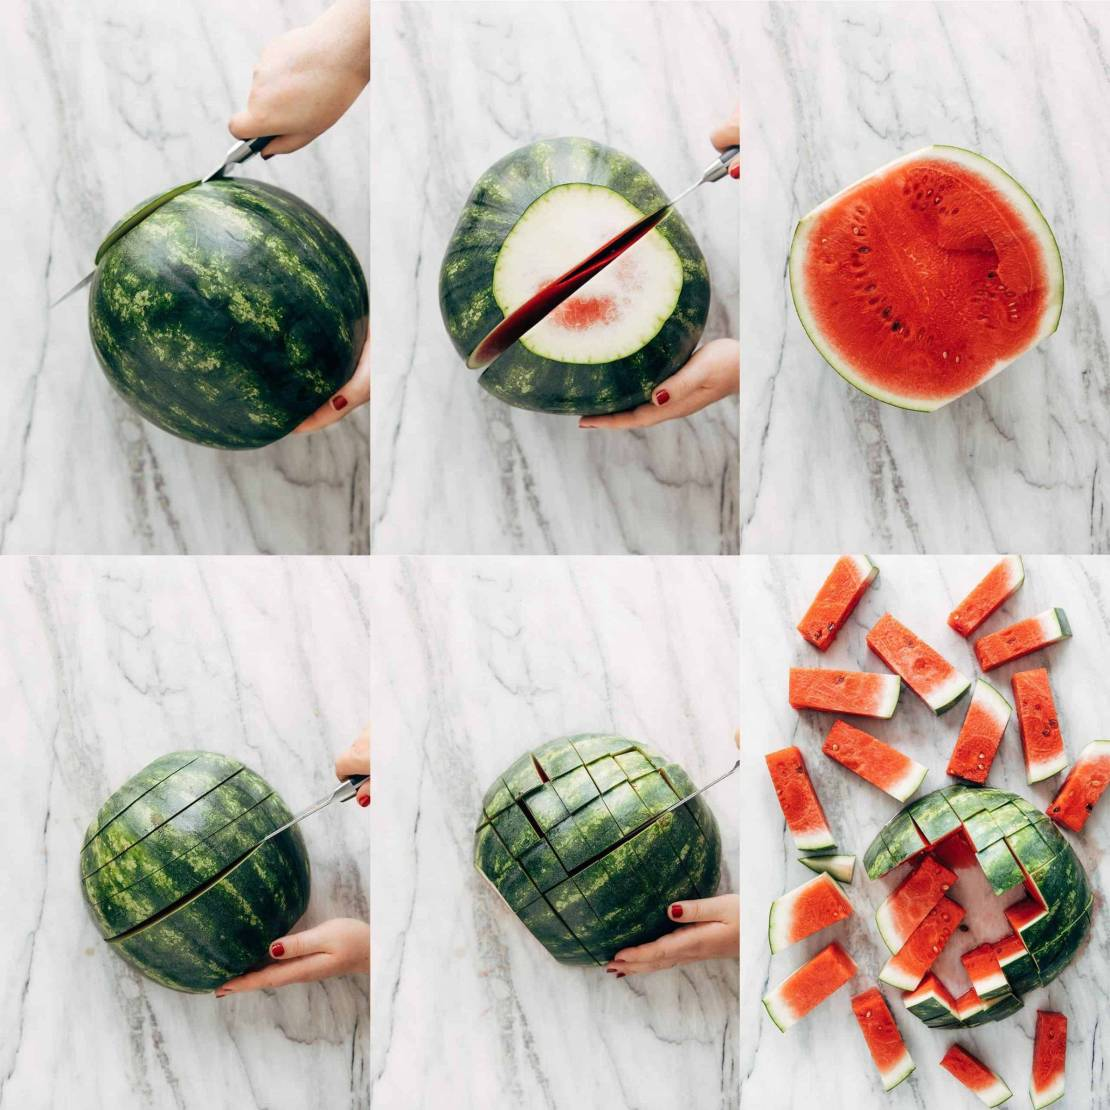 Collage showing how to cut a watermelon into sticks.